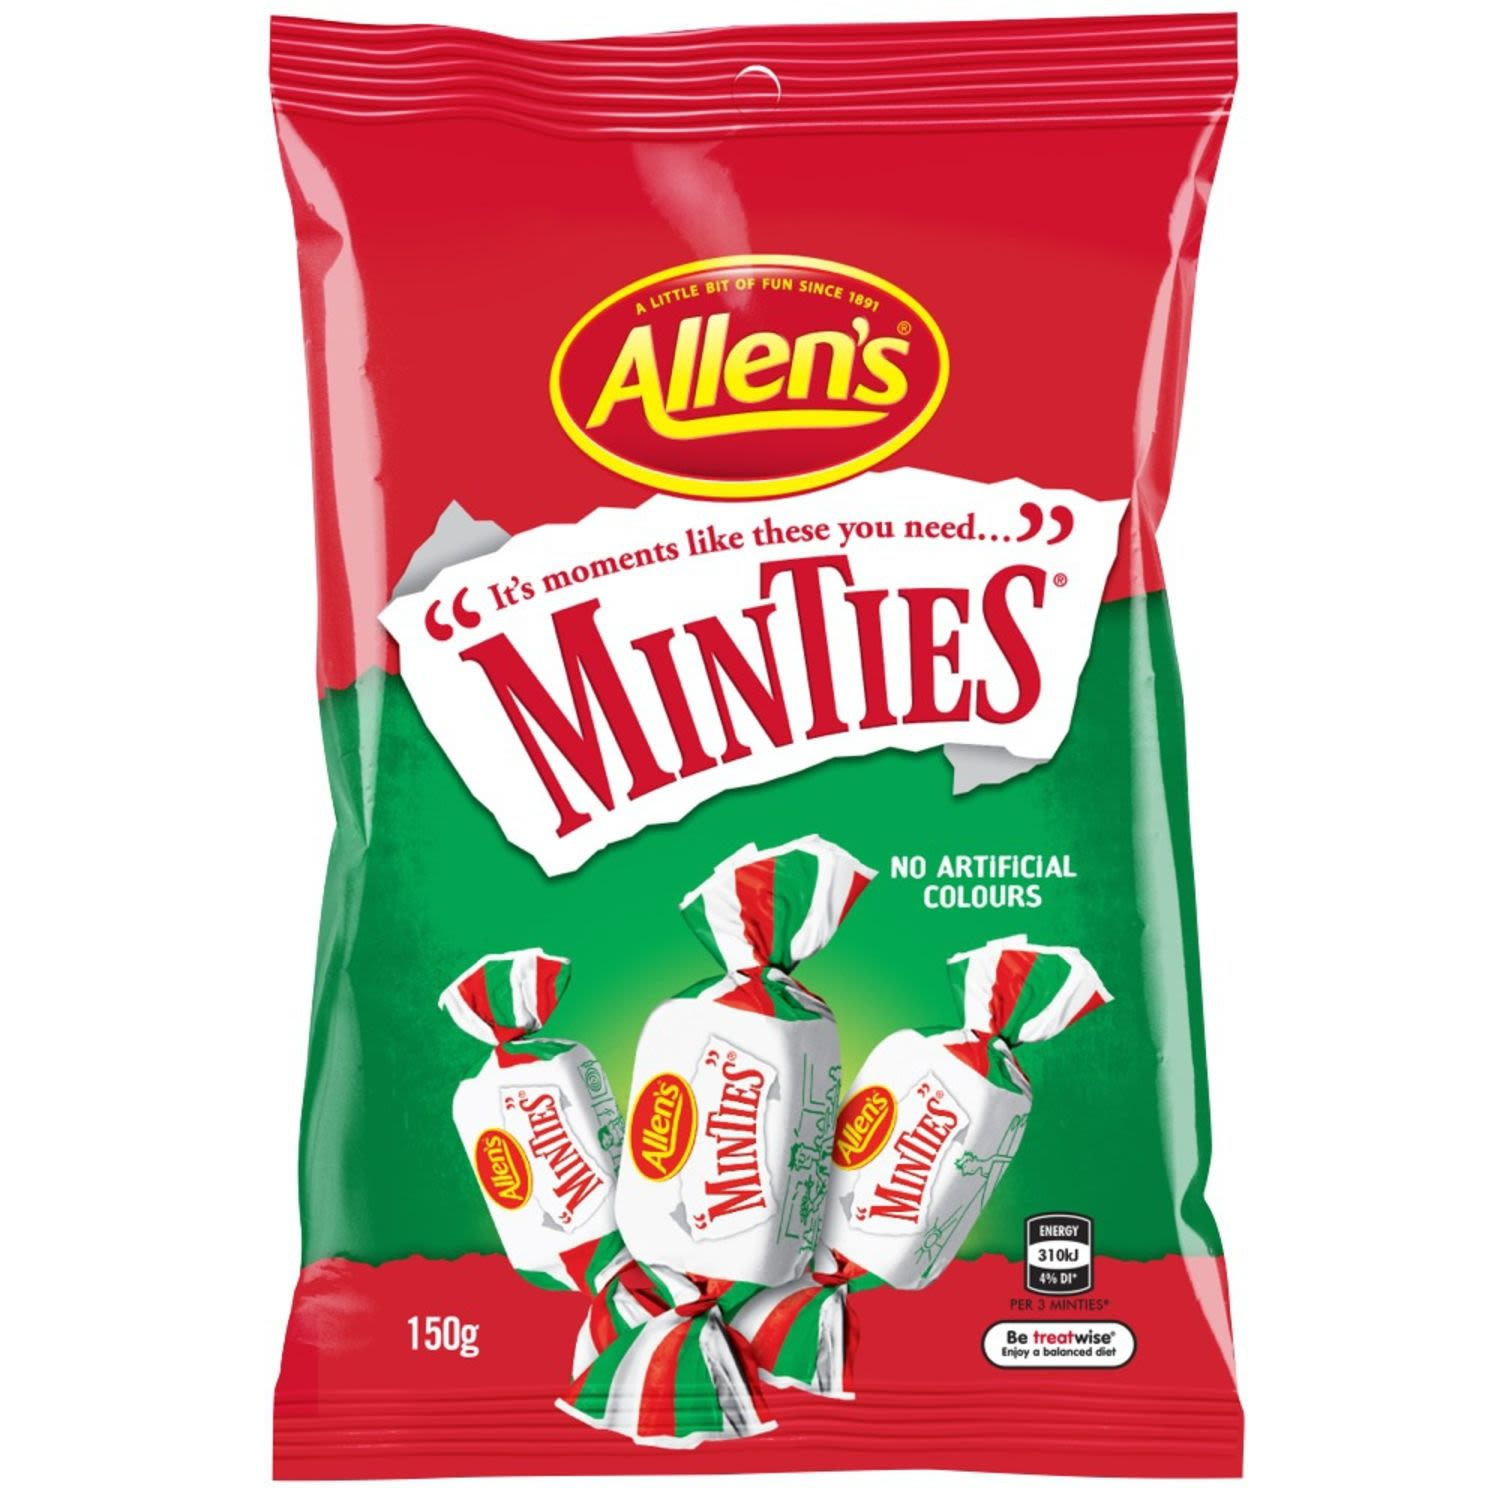 Allen's Minties are a chewy mouthful of minty refreshment and a favourite amongst generations. Pass one to a friend, twist the wrapper open, pick a corner and tear along the edges. Who can tear the longest Minties wrapper strip without letting it rip? But there is more fun yet... pop these yummy refreshing mints in your mouth and chew, chew, chew. 3 Minties  = 1 Portion. Contains no artificial colours so are great to share with family and friends. May contain Egg. Allen's makes smiles!